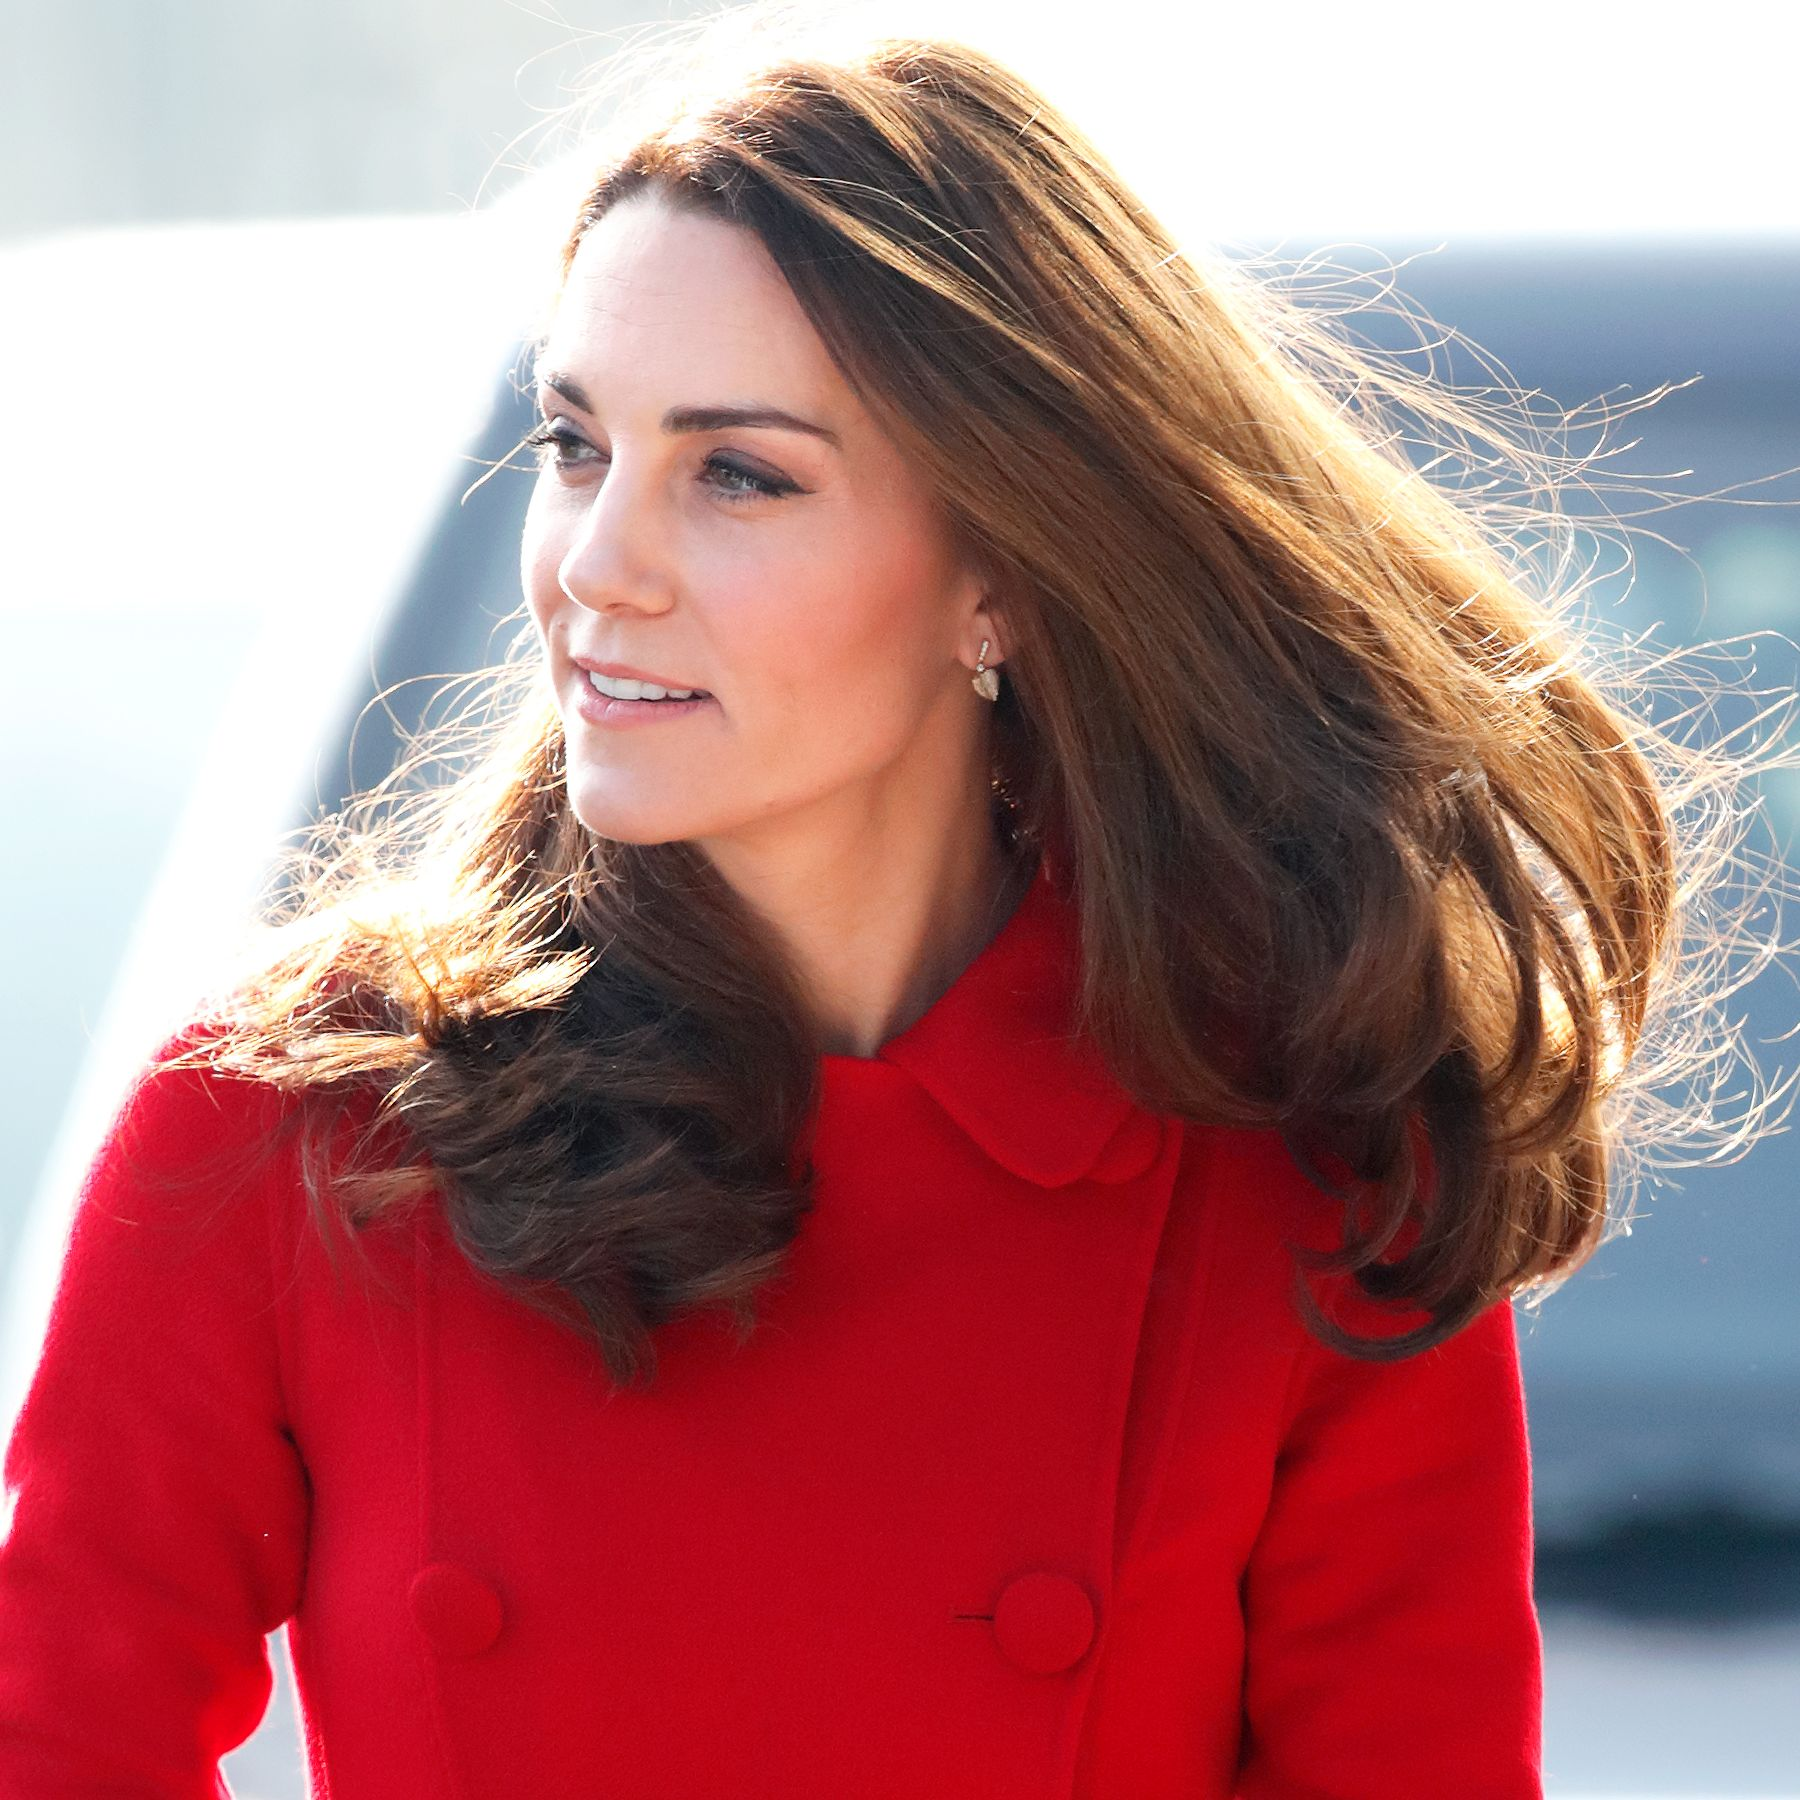 Kate Middleton Reportedly Considered Legal Action Over False 'Rural Rival' Feud Story